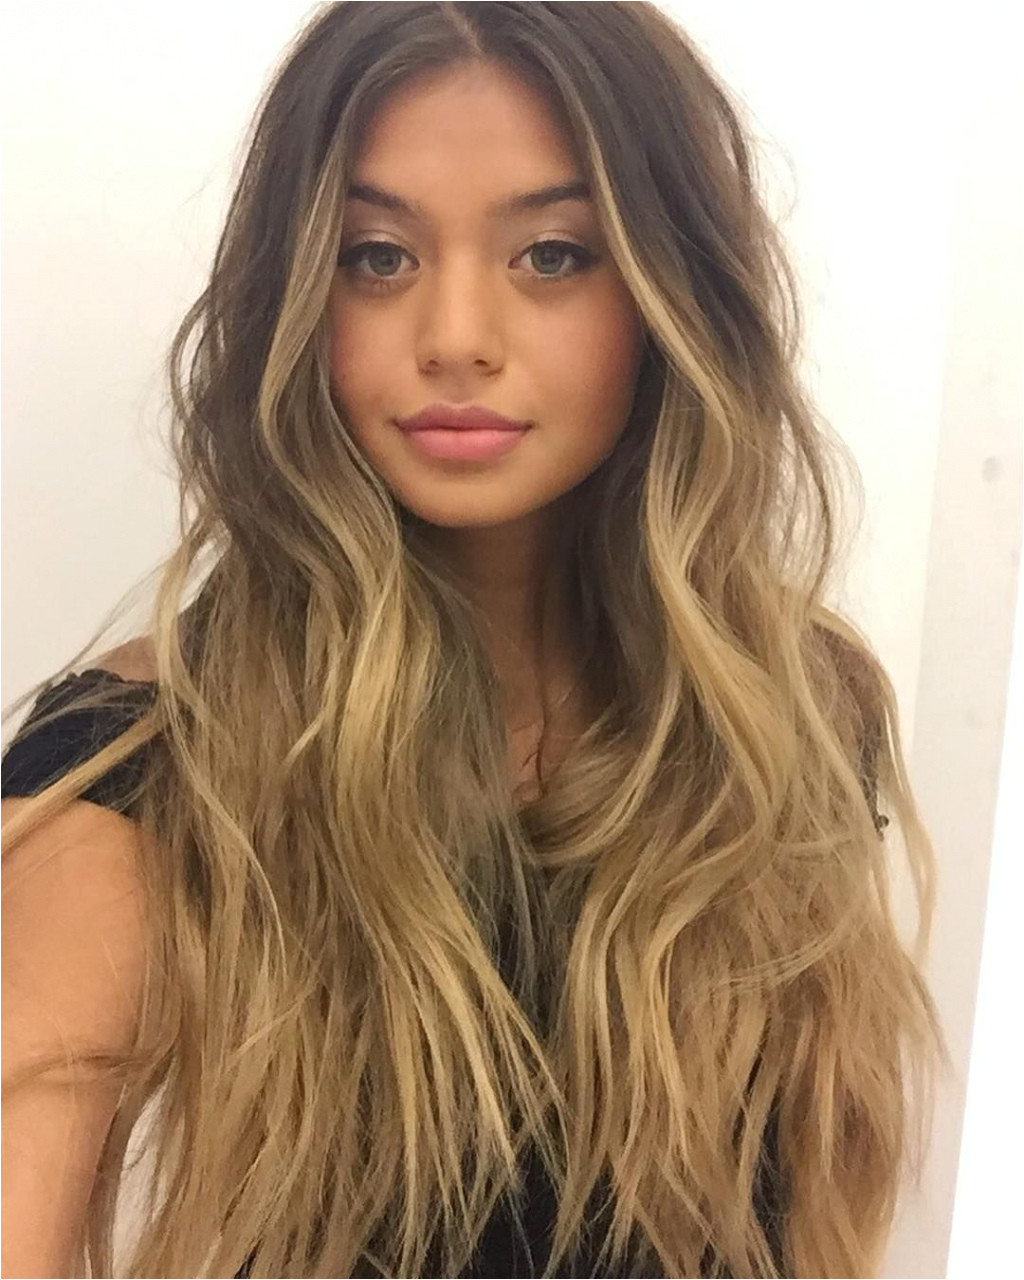 New Hairstyles for Long Blonde Hair 55 Hairstyles for Long Blonde Hair New Pogledajte Ovu Instagram